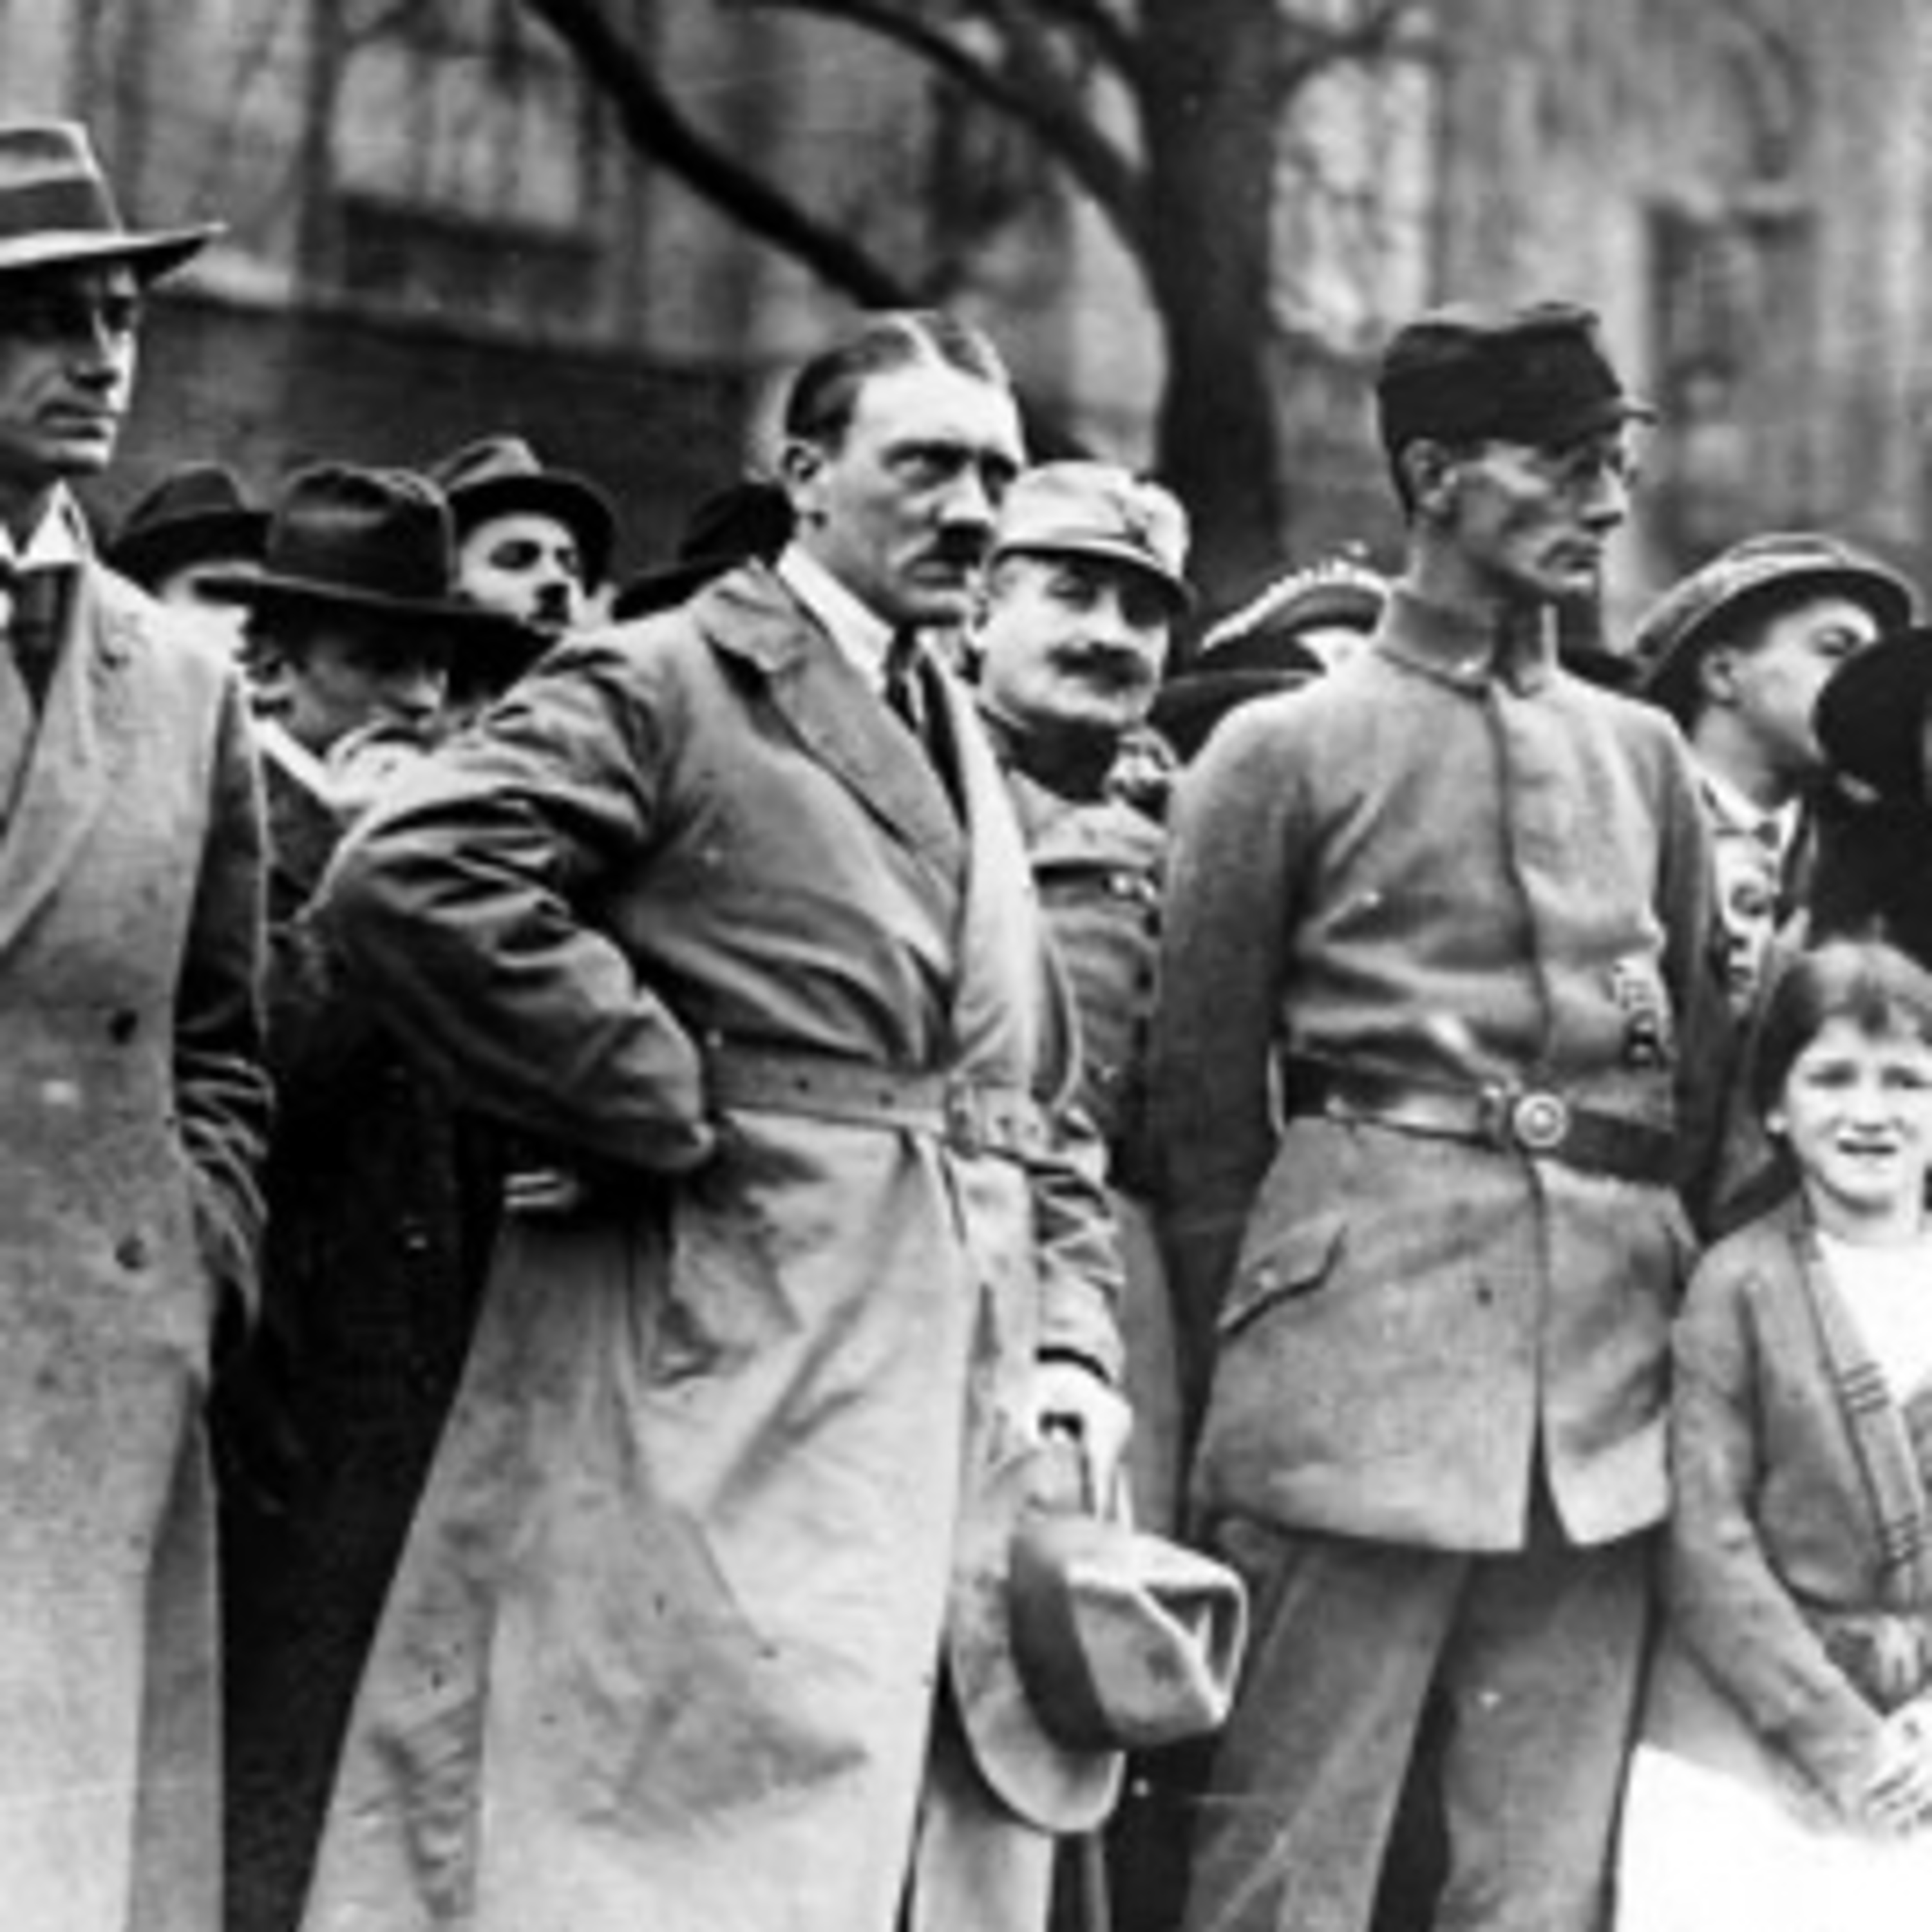 Why was Hitler able to dominate Germany by 1934? Part 1